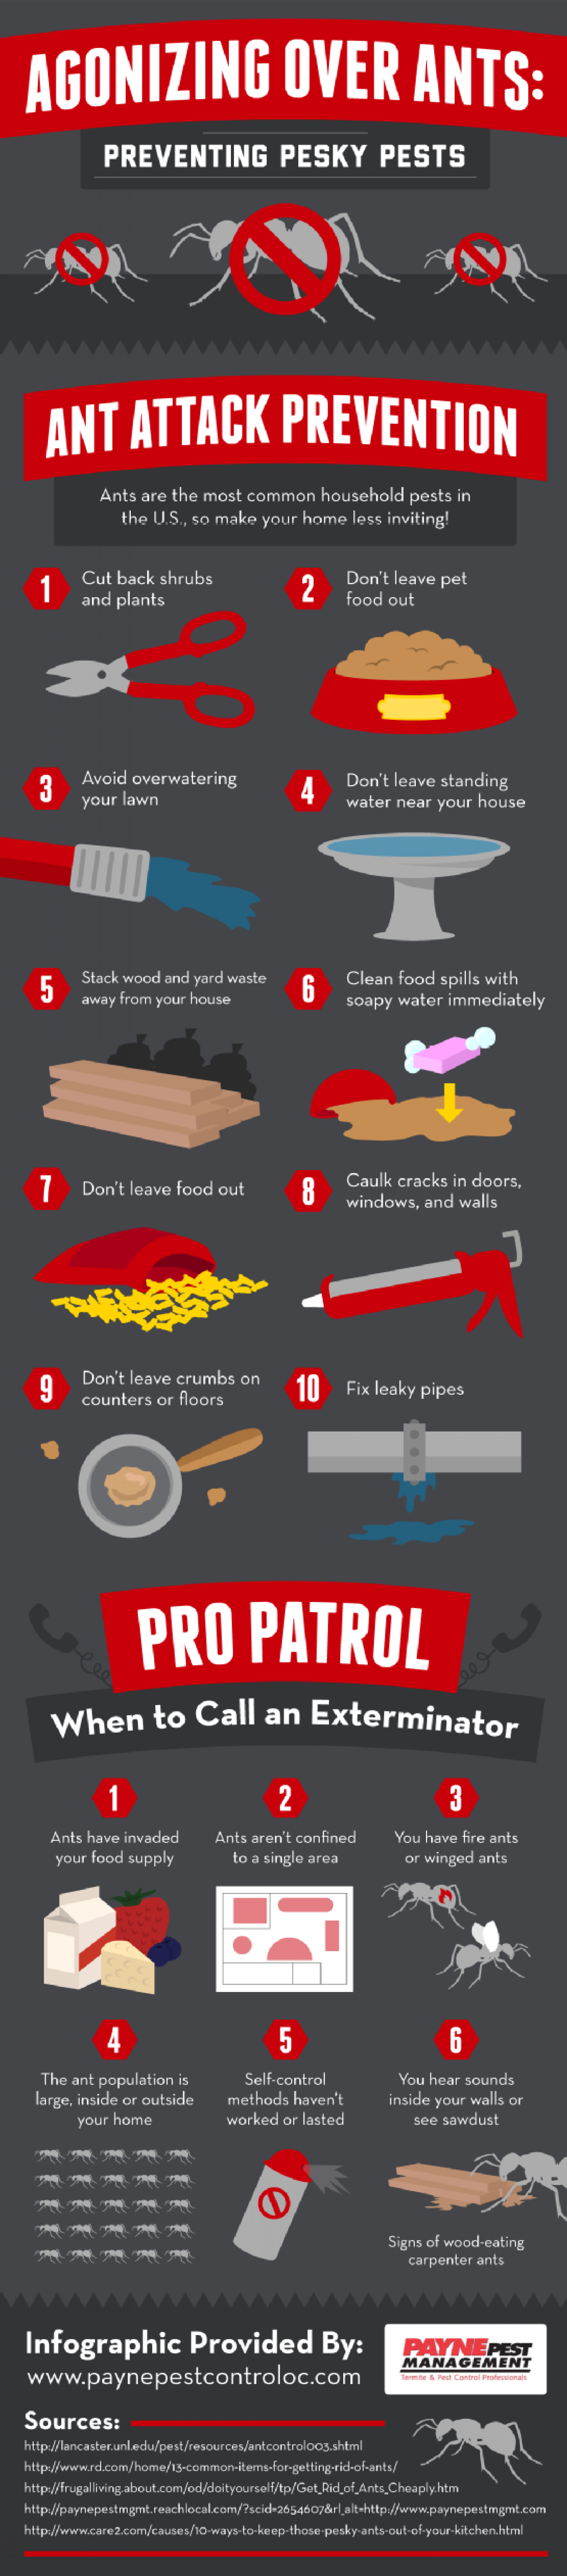 Agonizing Over Ants: Preventing Pesky Pests Infographic